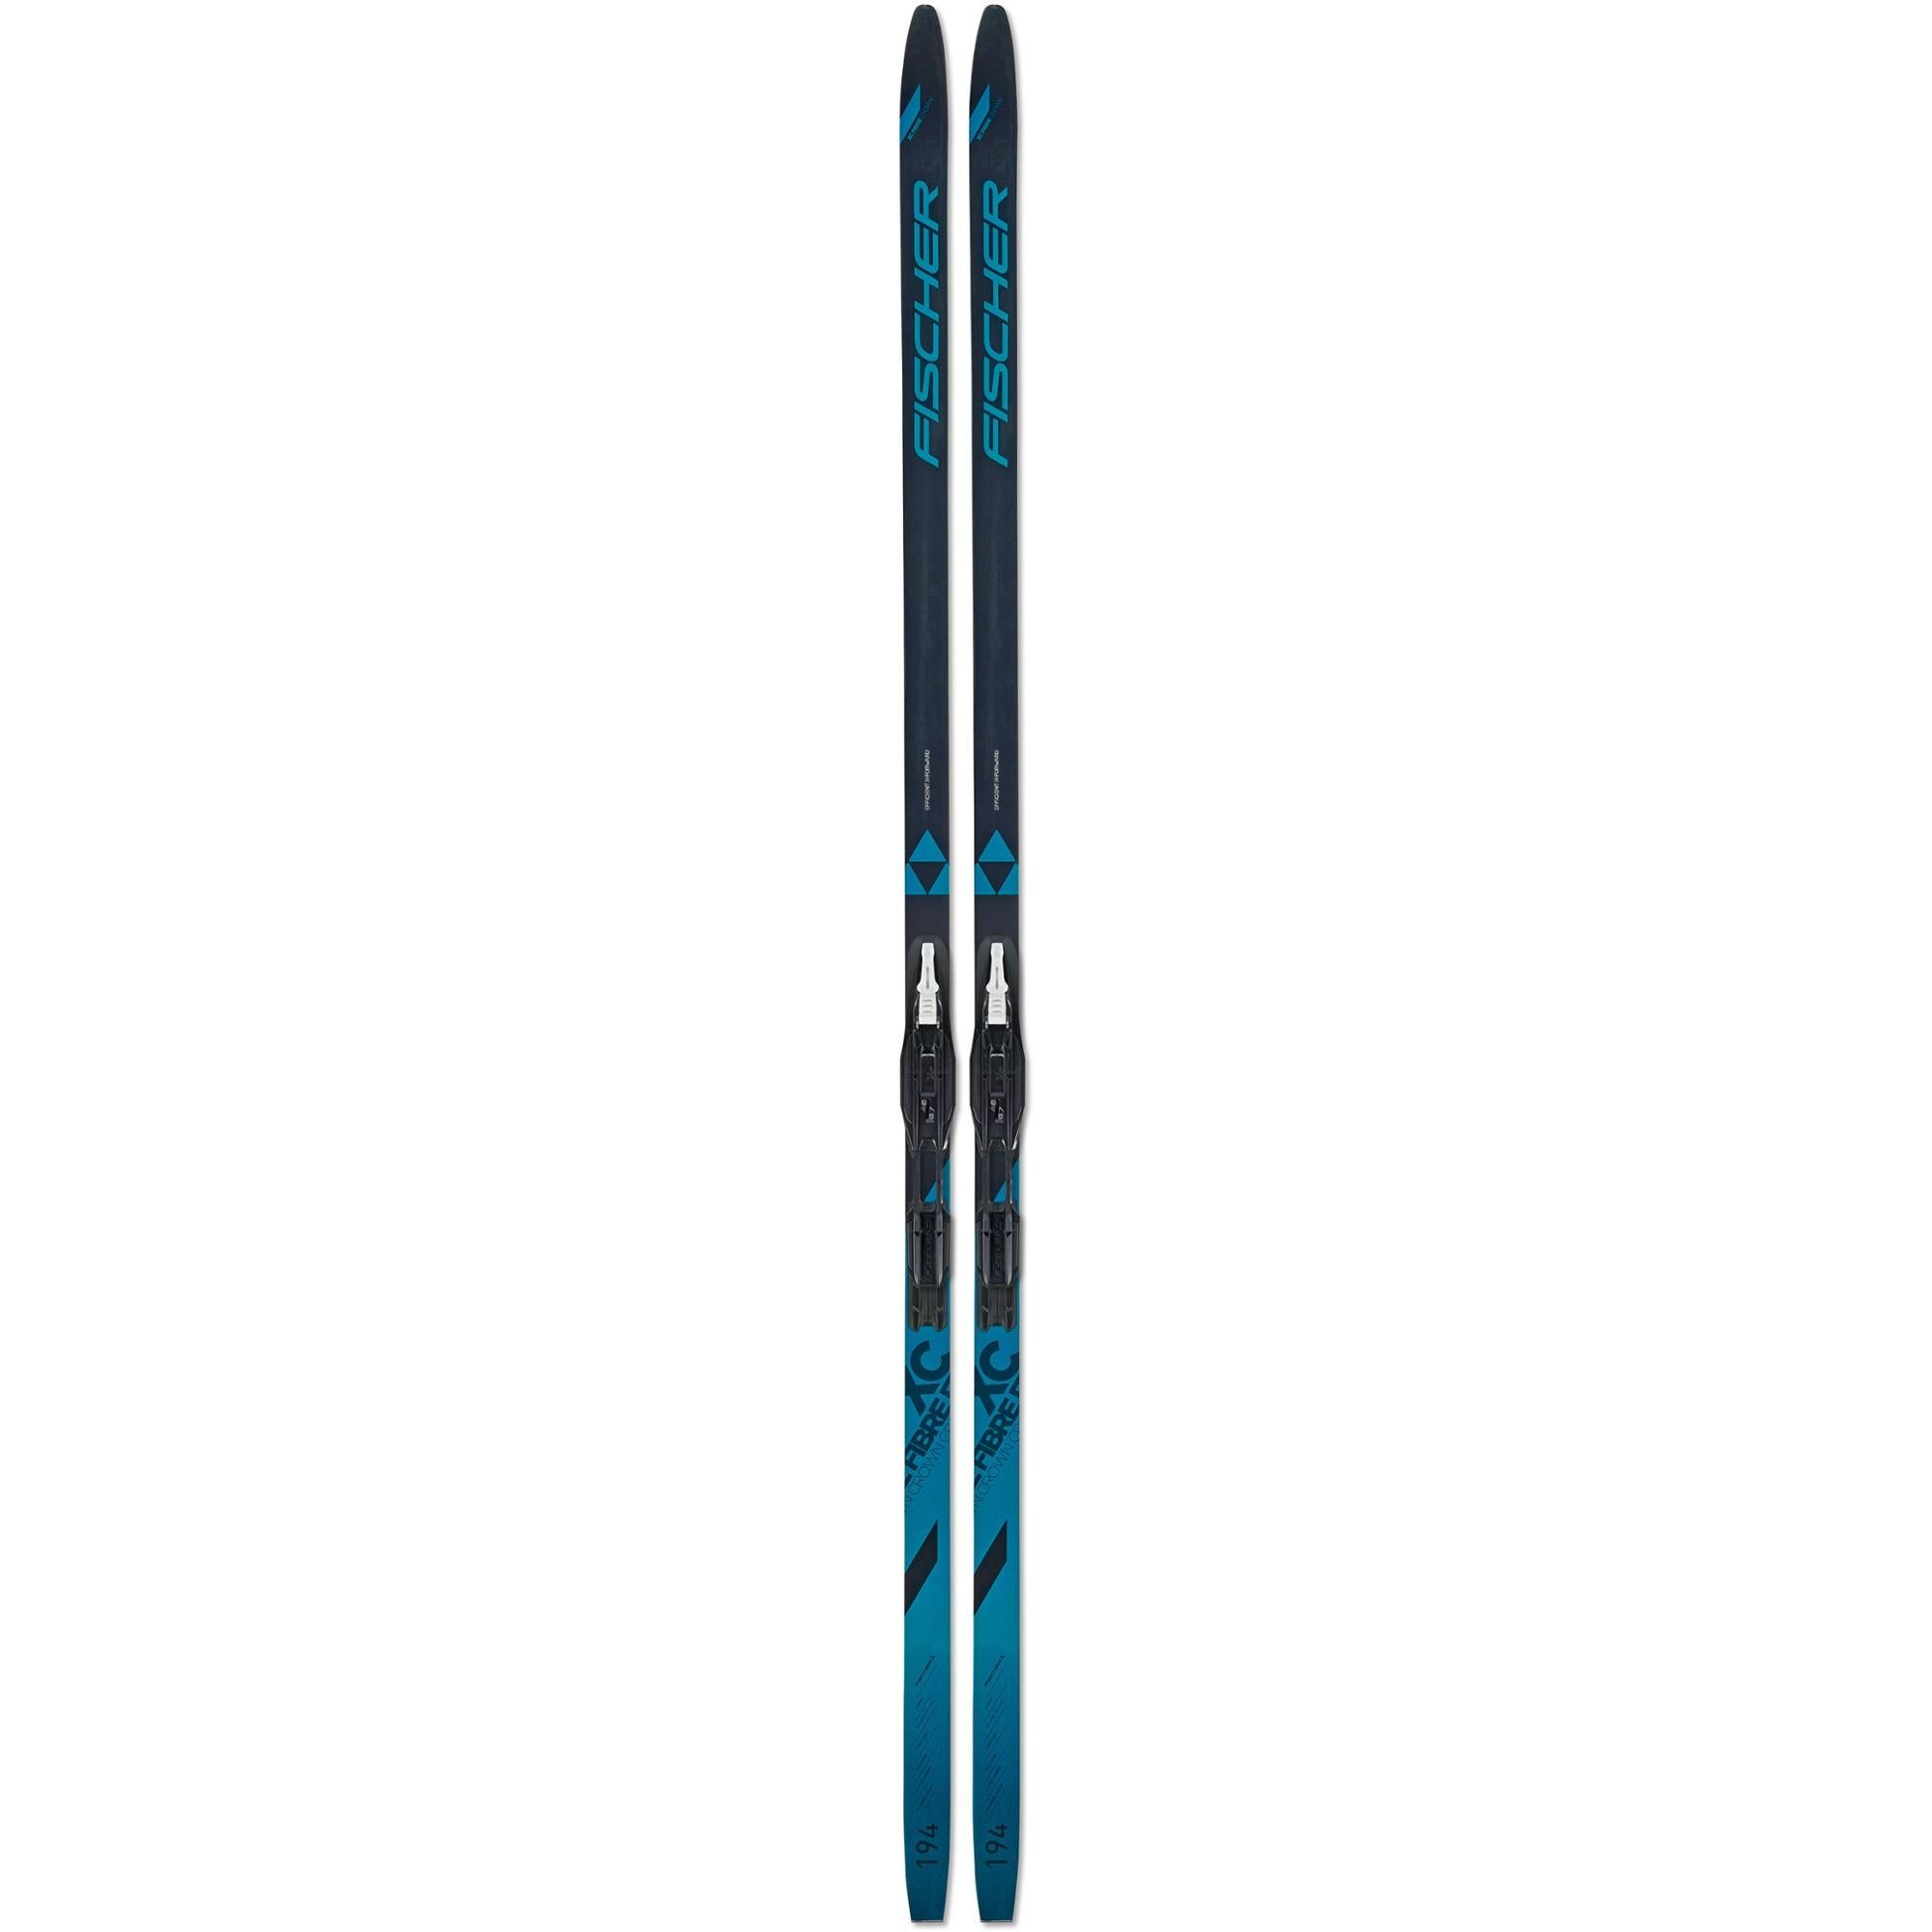 Built to excel in packed  tracked and moderate ungroomed conditions where other skis slow down  the Fischer Fibre Crown EF cross-country skis with bindings make skiing easier for any level of skier.